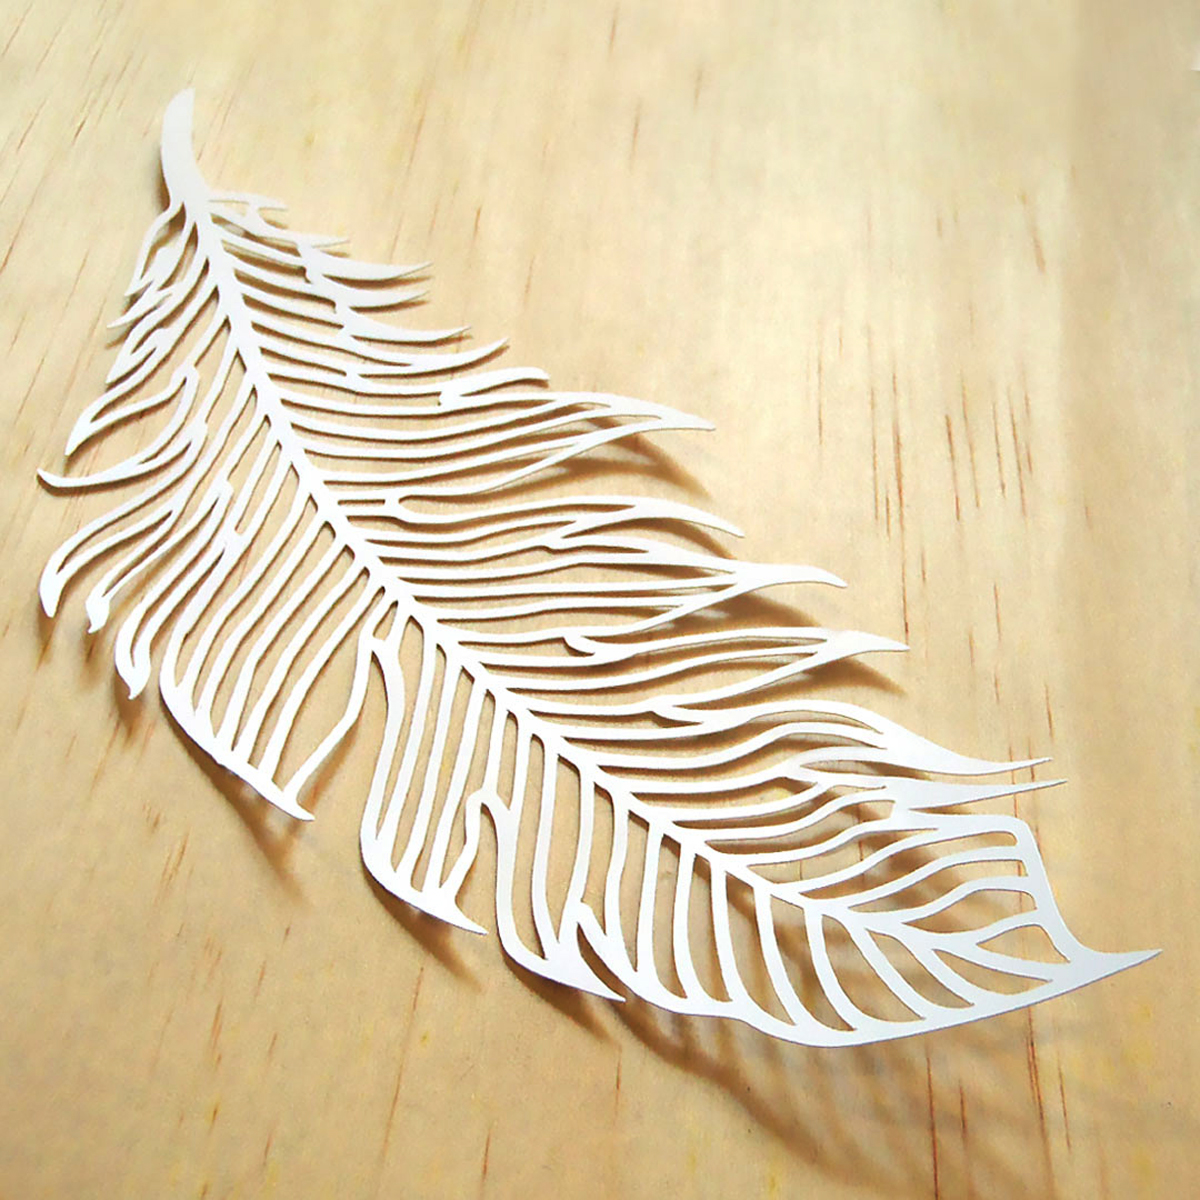 Handmadely Feather paper product